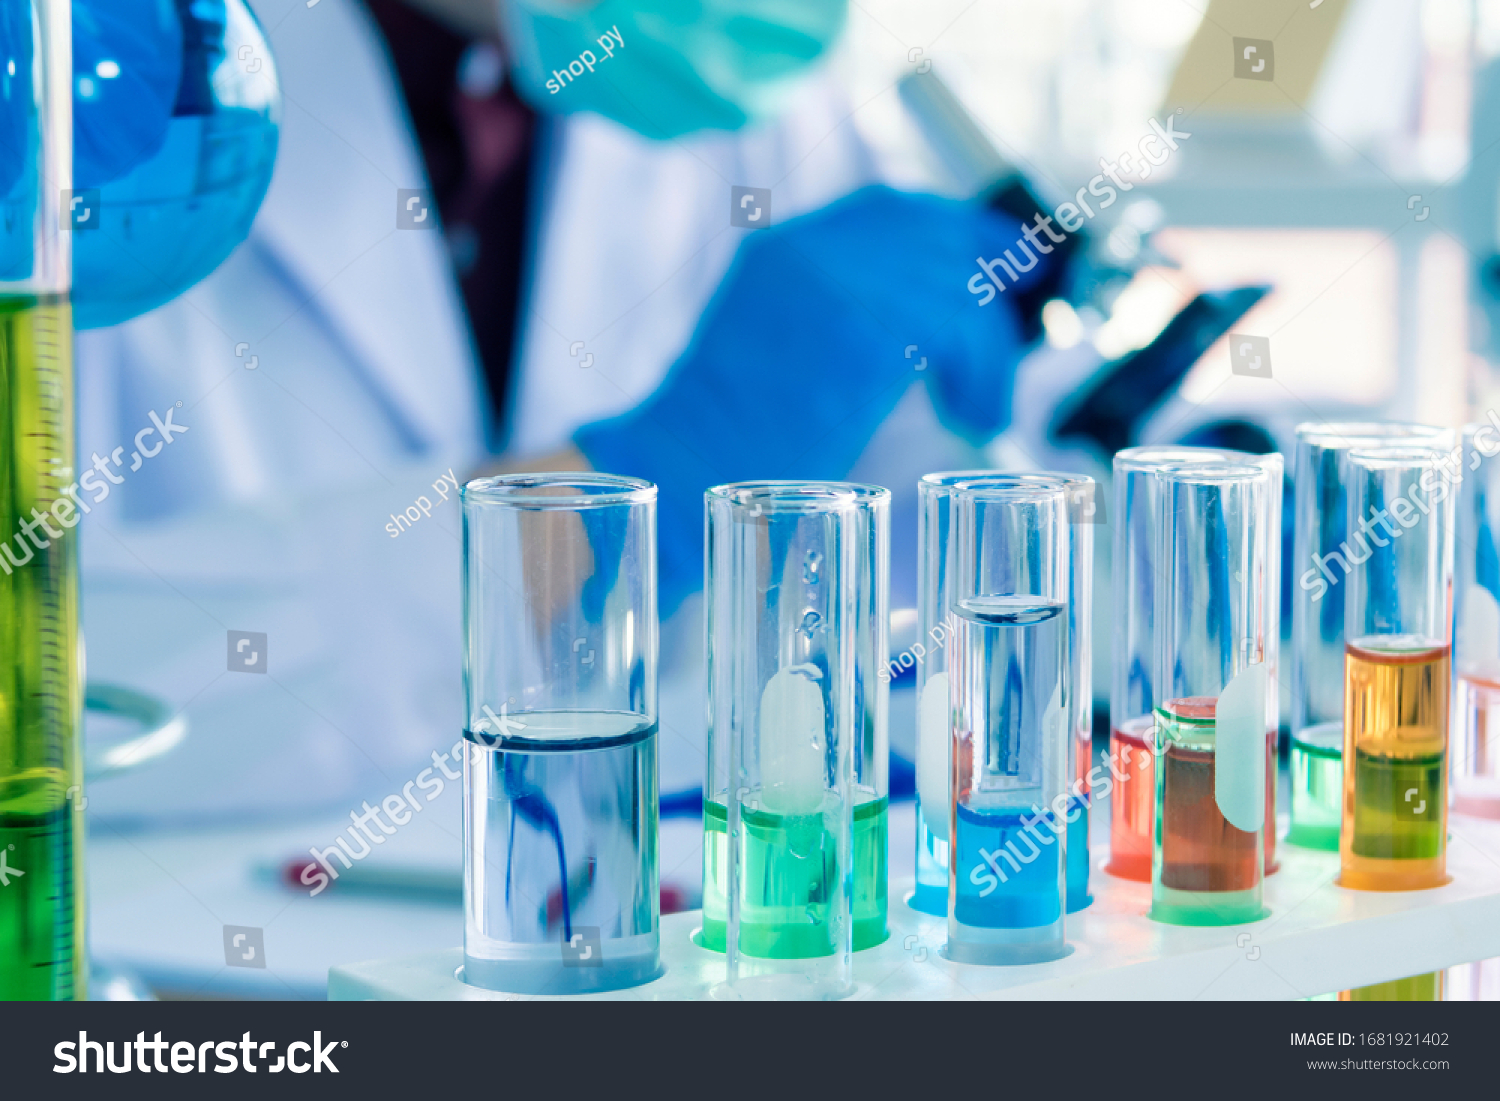 Close up of Red, pink, green, orange blue color liquid medicine in Test tube in rack on chemical table in the modern laboratory room. The education Chemistry and medical science research concept. #1681921402